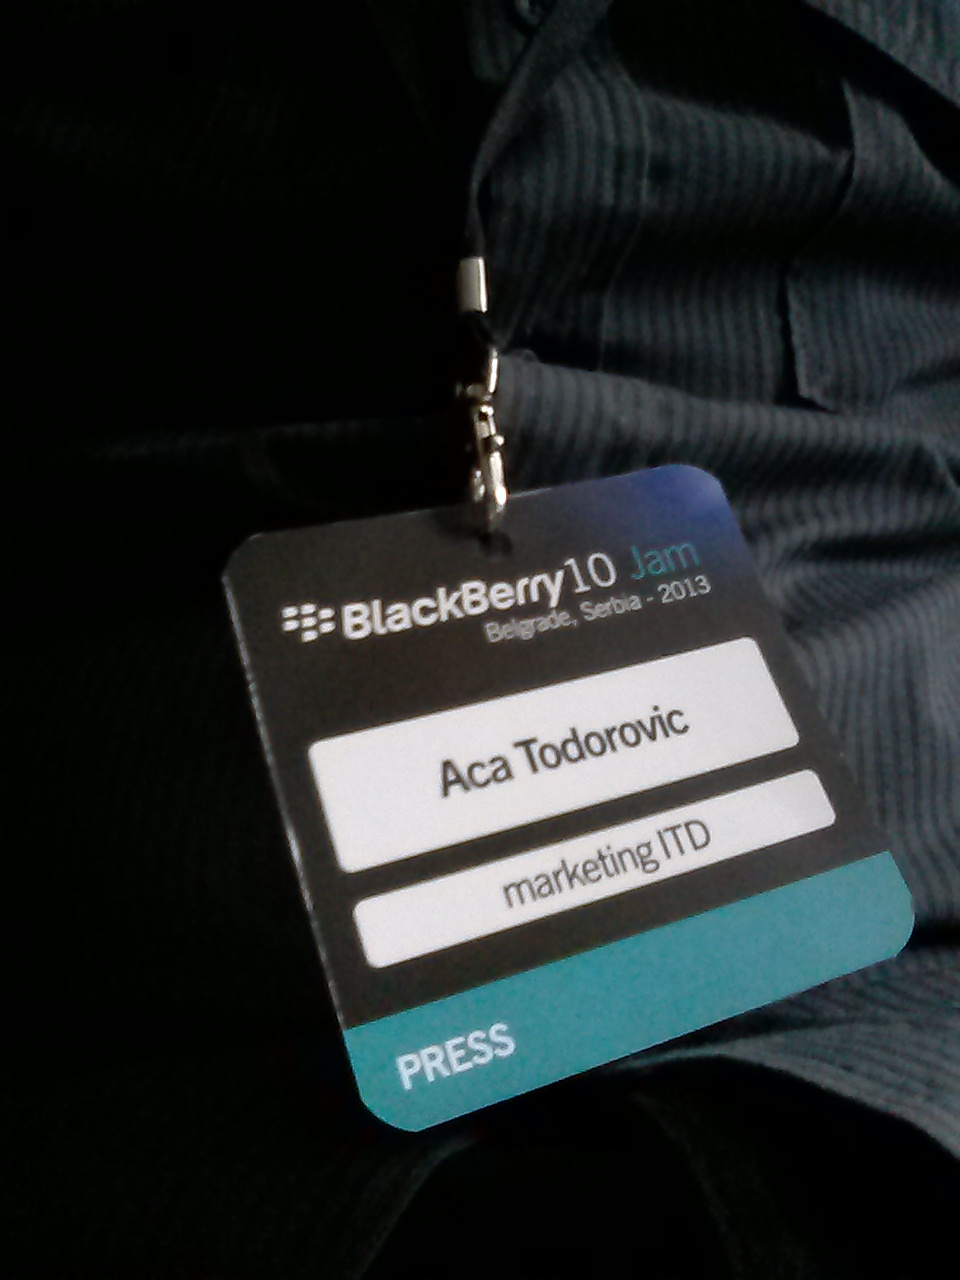 BlackBerry 10 mini Jam Belgrade press card